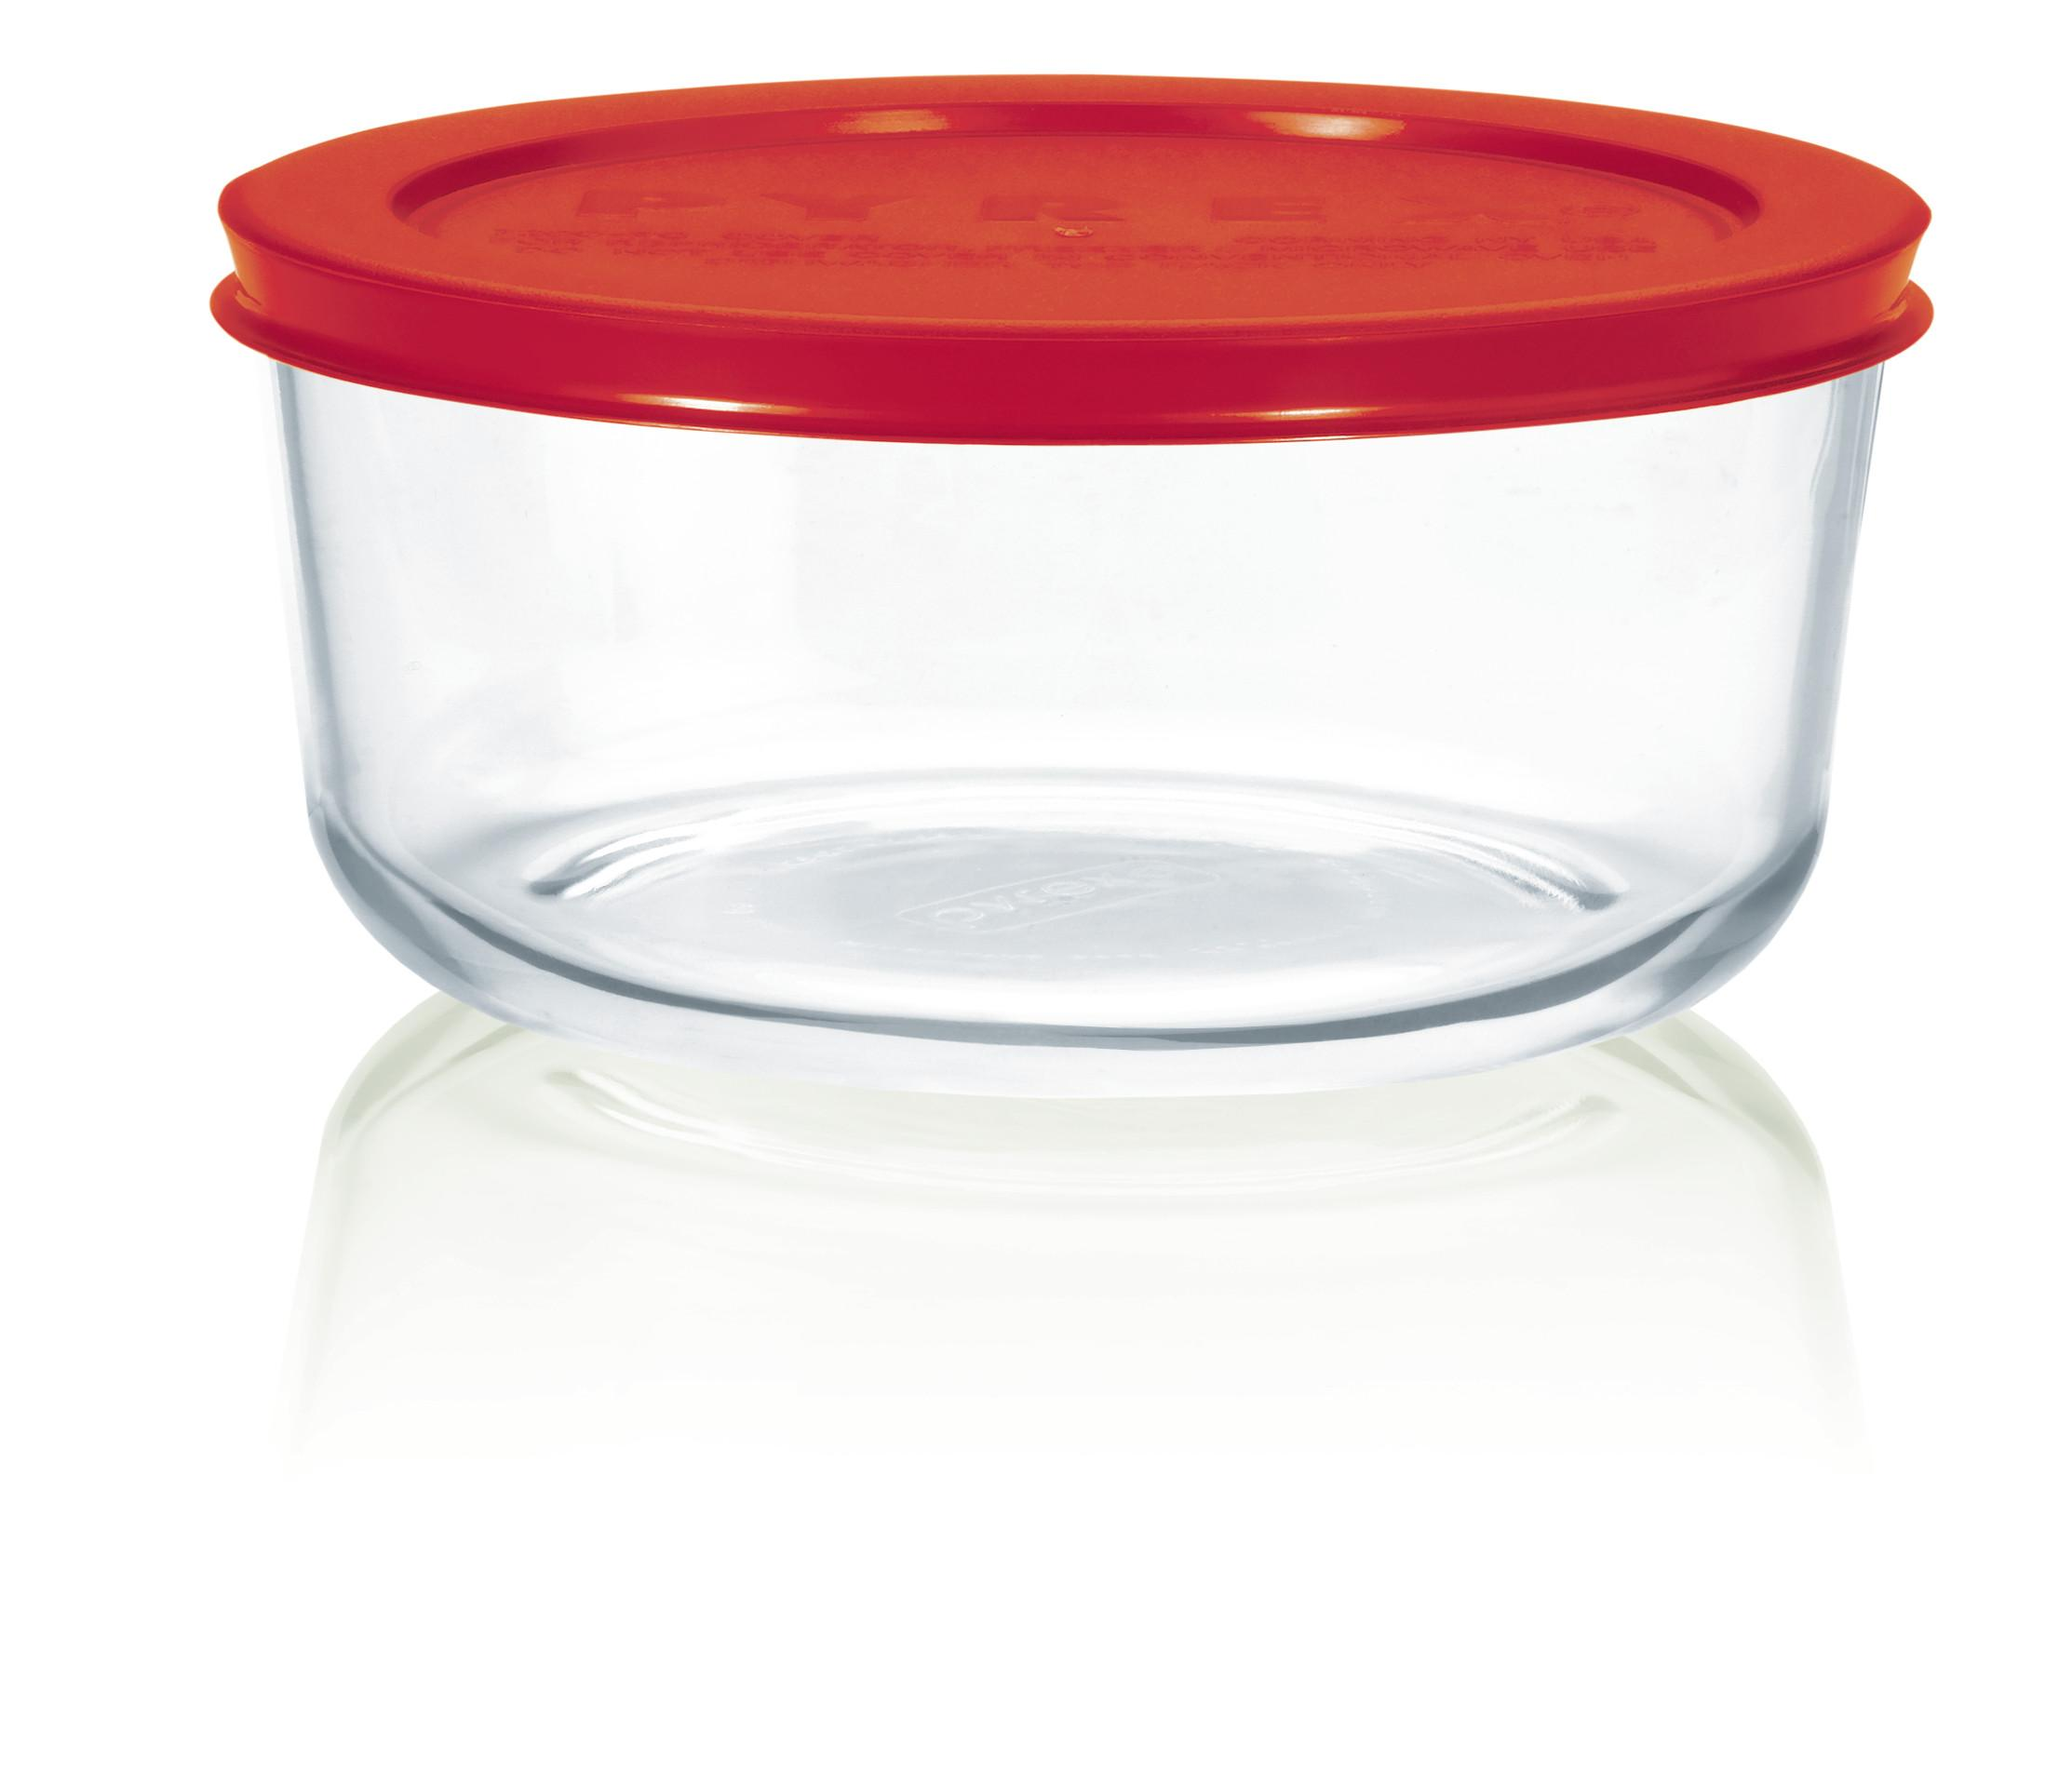 Amazon.com: Pyrex Simply Store Glass Round Food Container